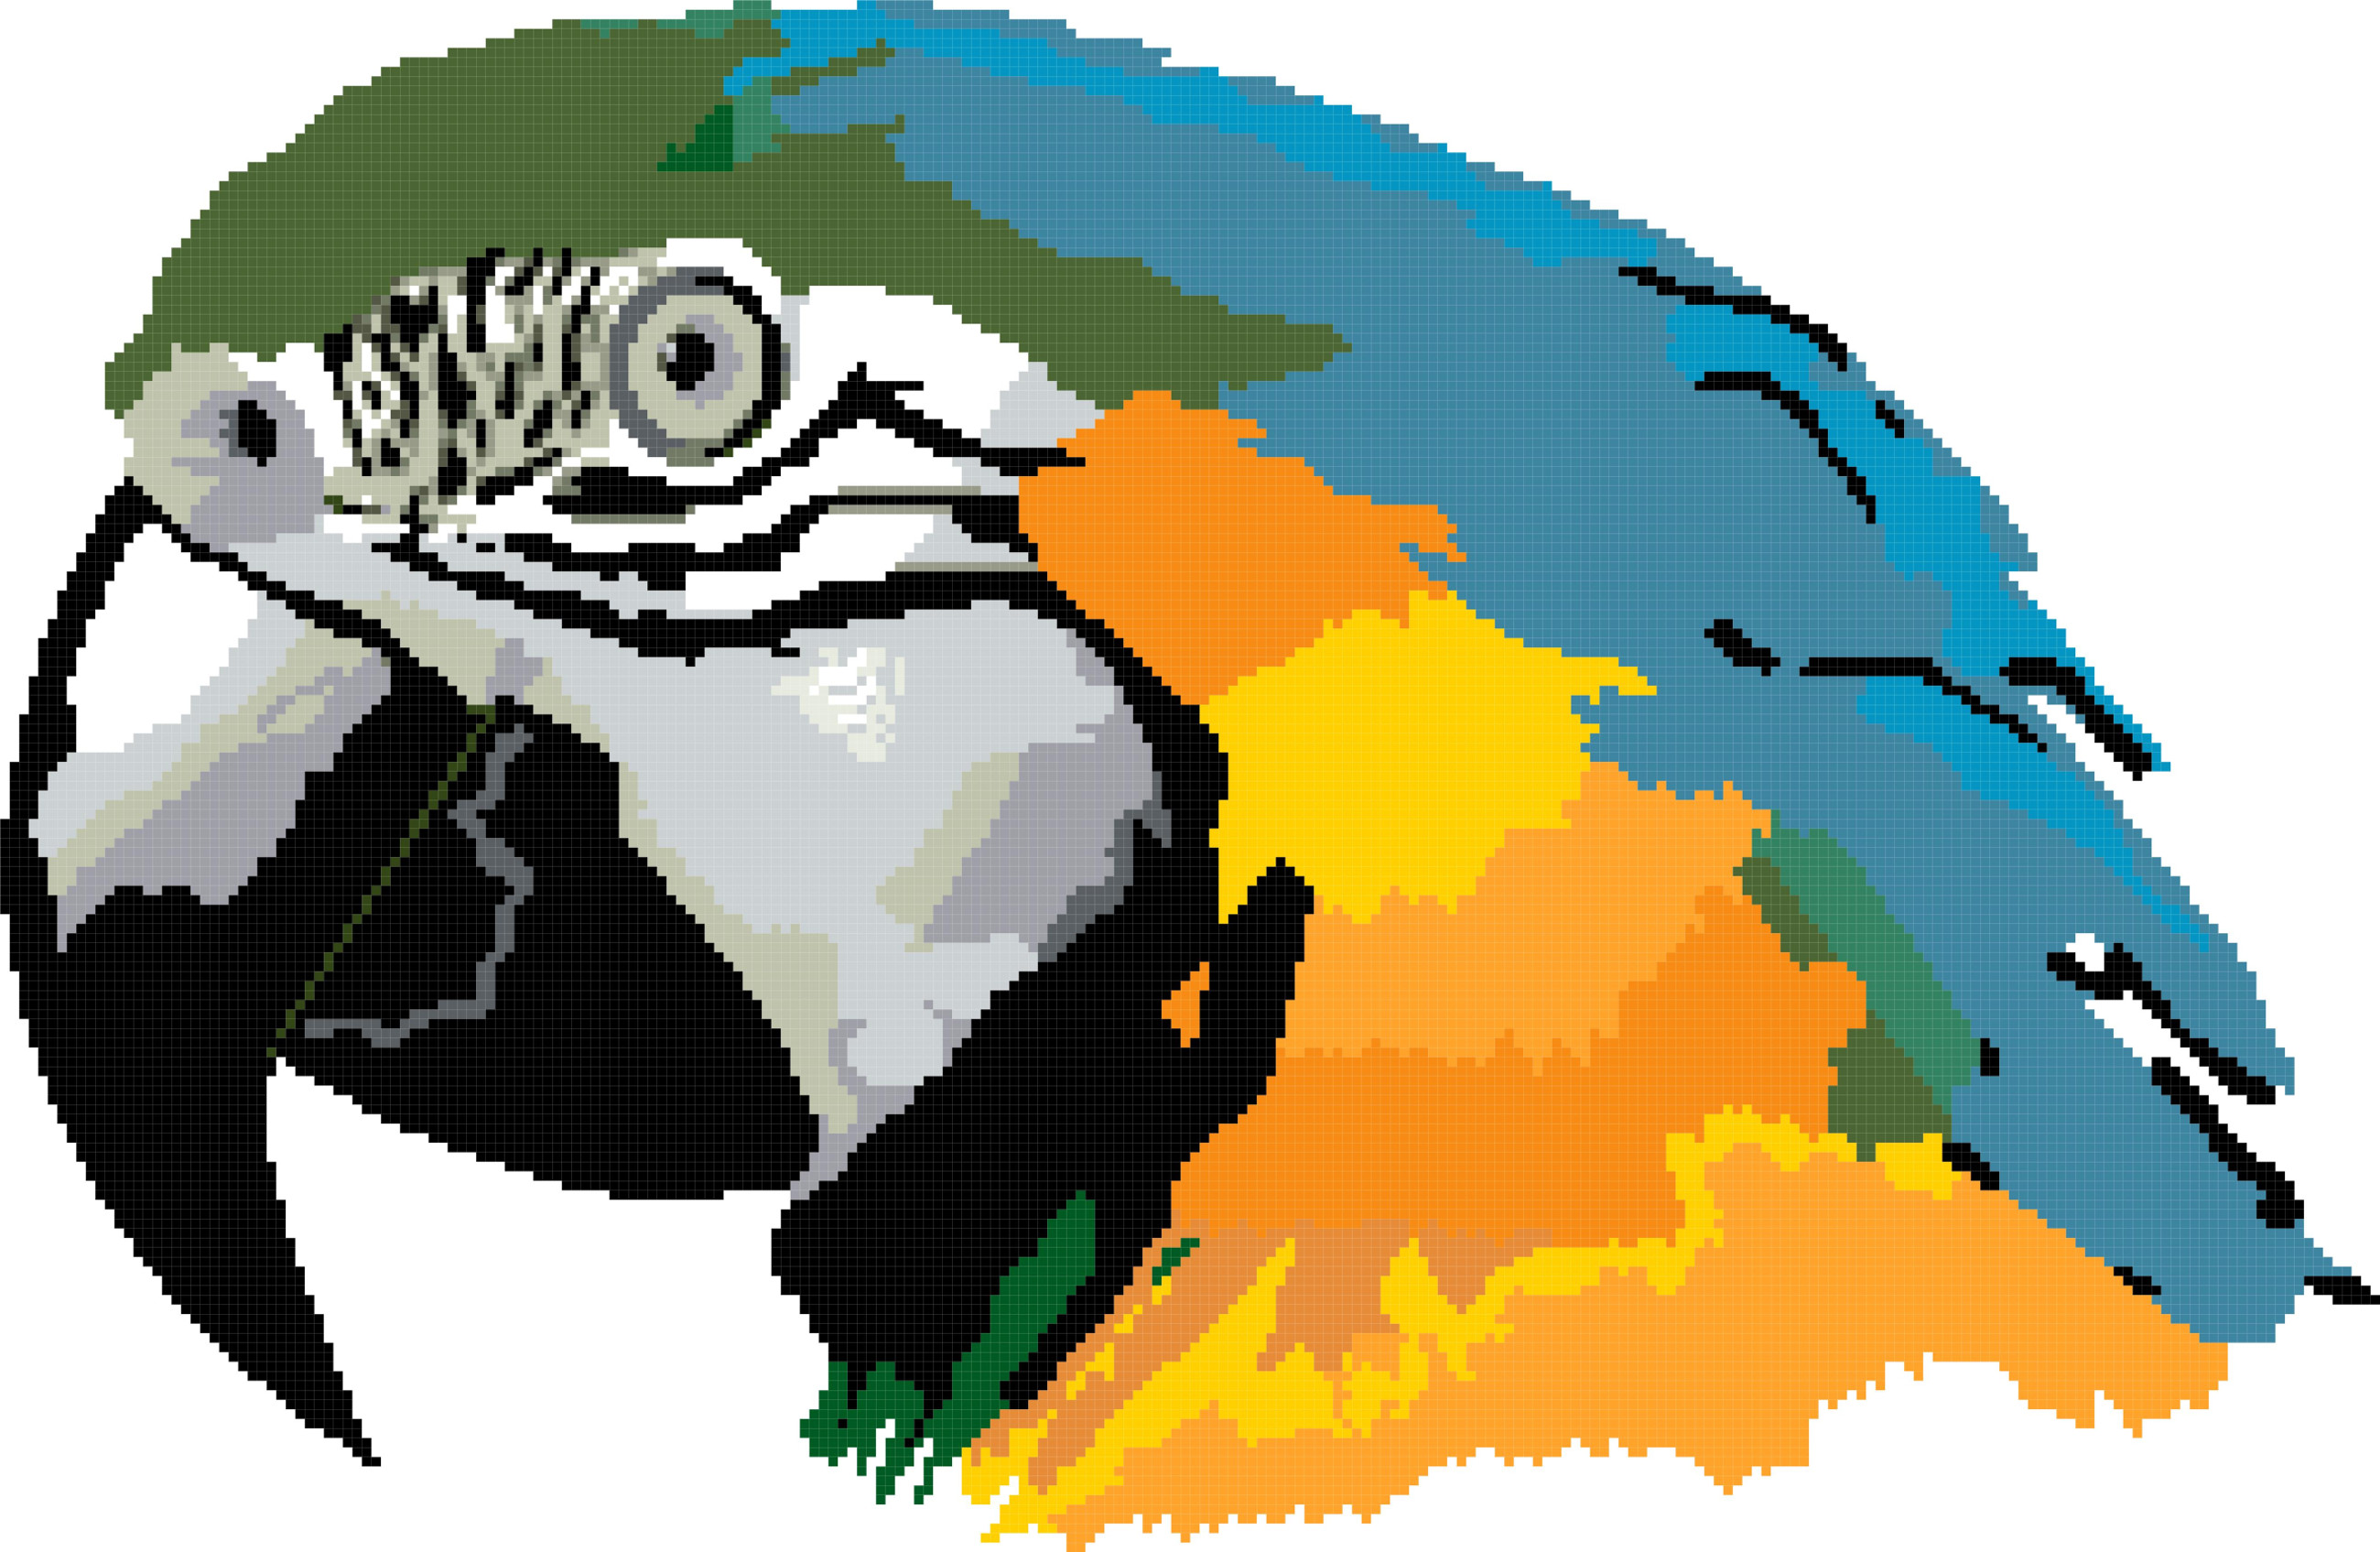 parrot painting cross stitch image